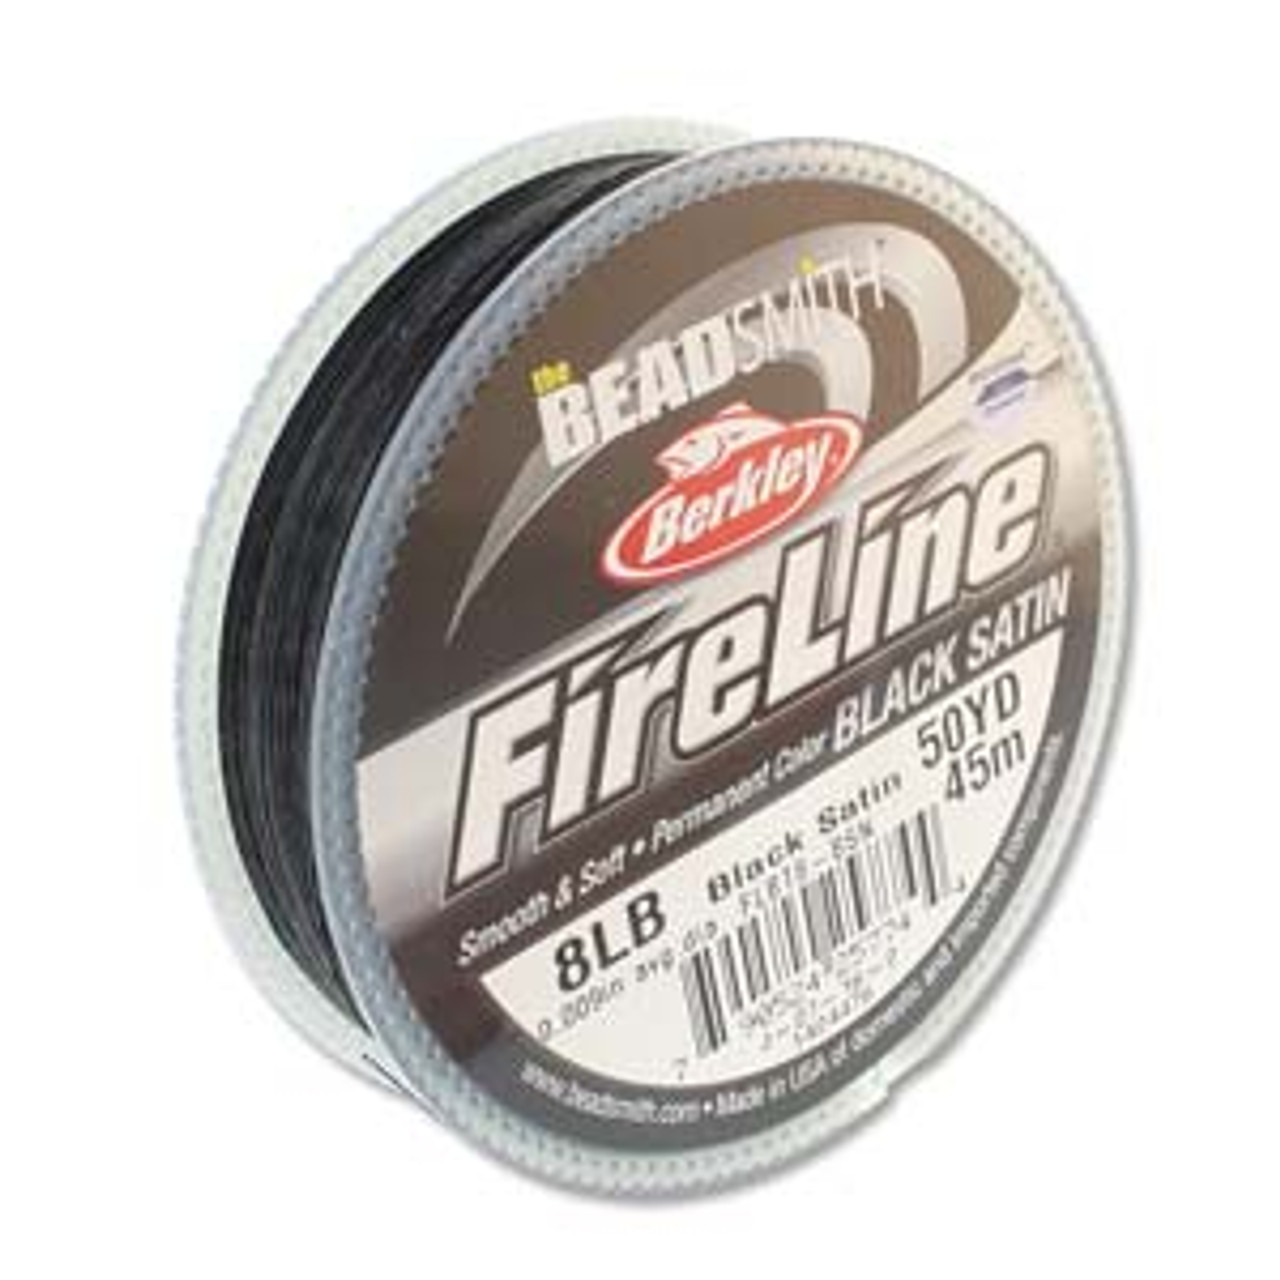 8lb Black Satin Fireline - 50yd spool